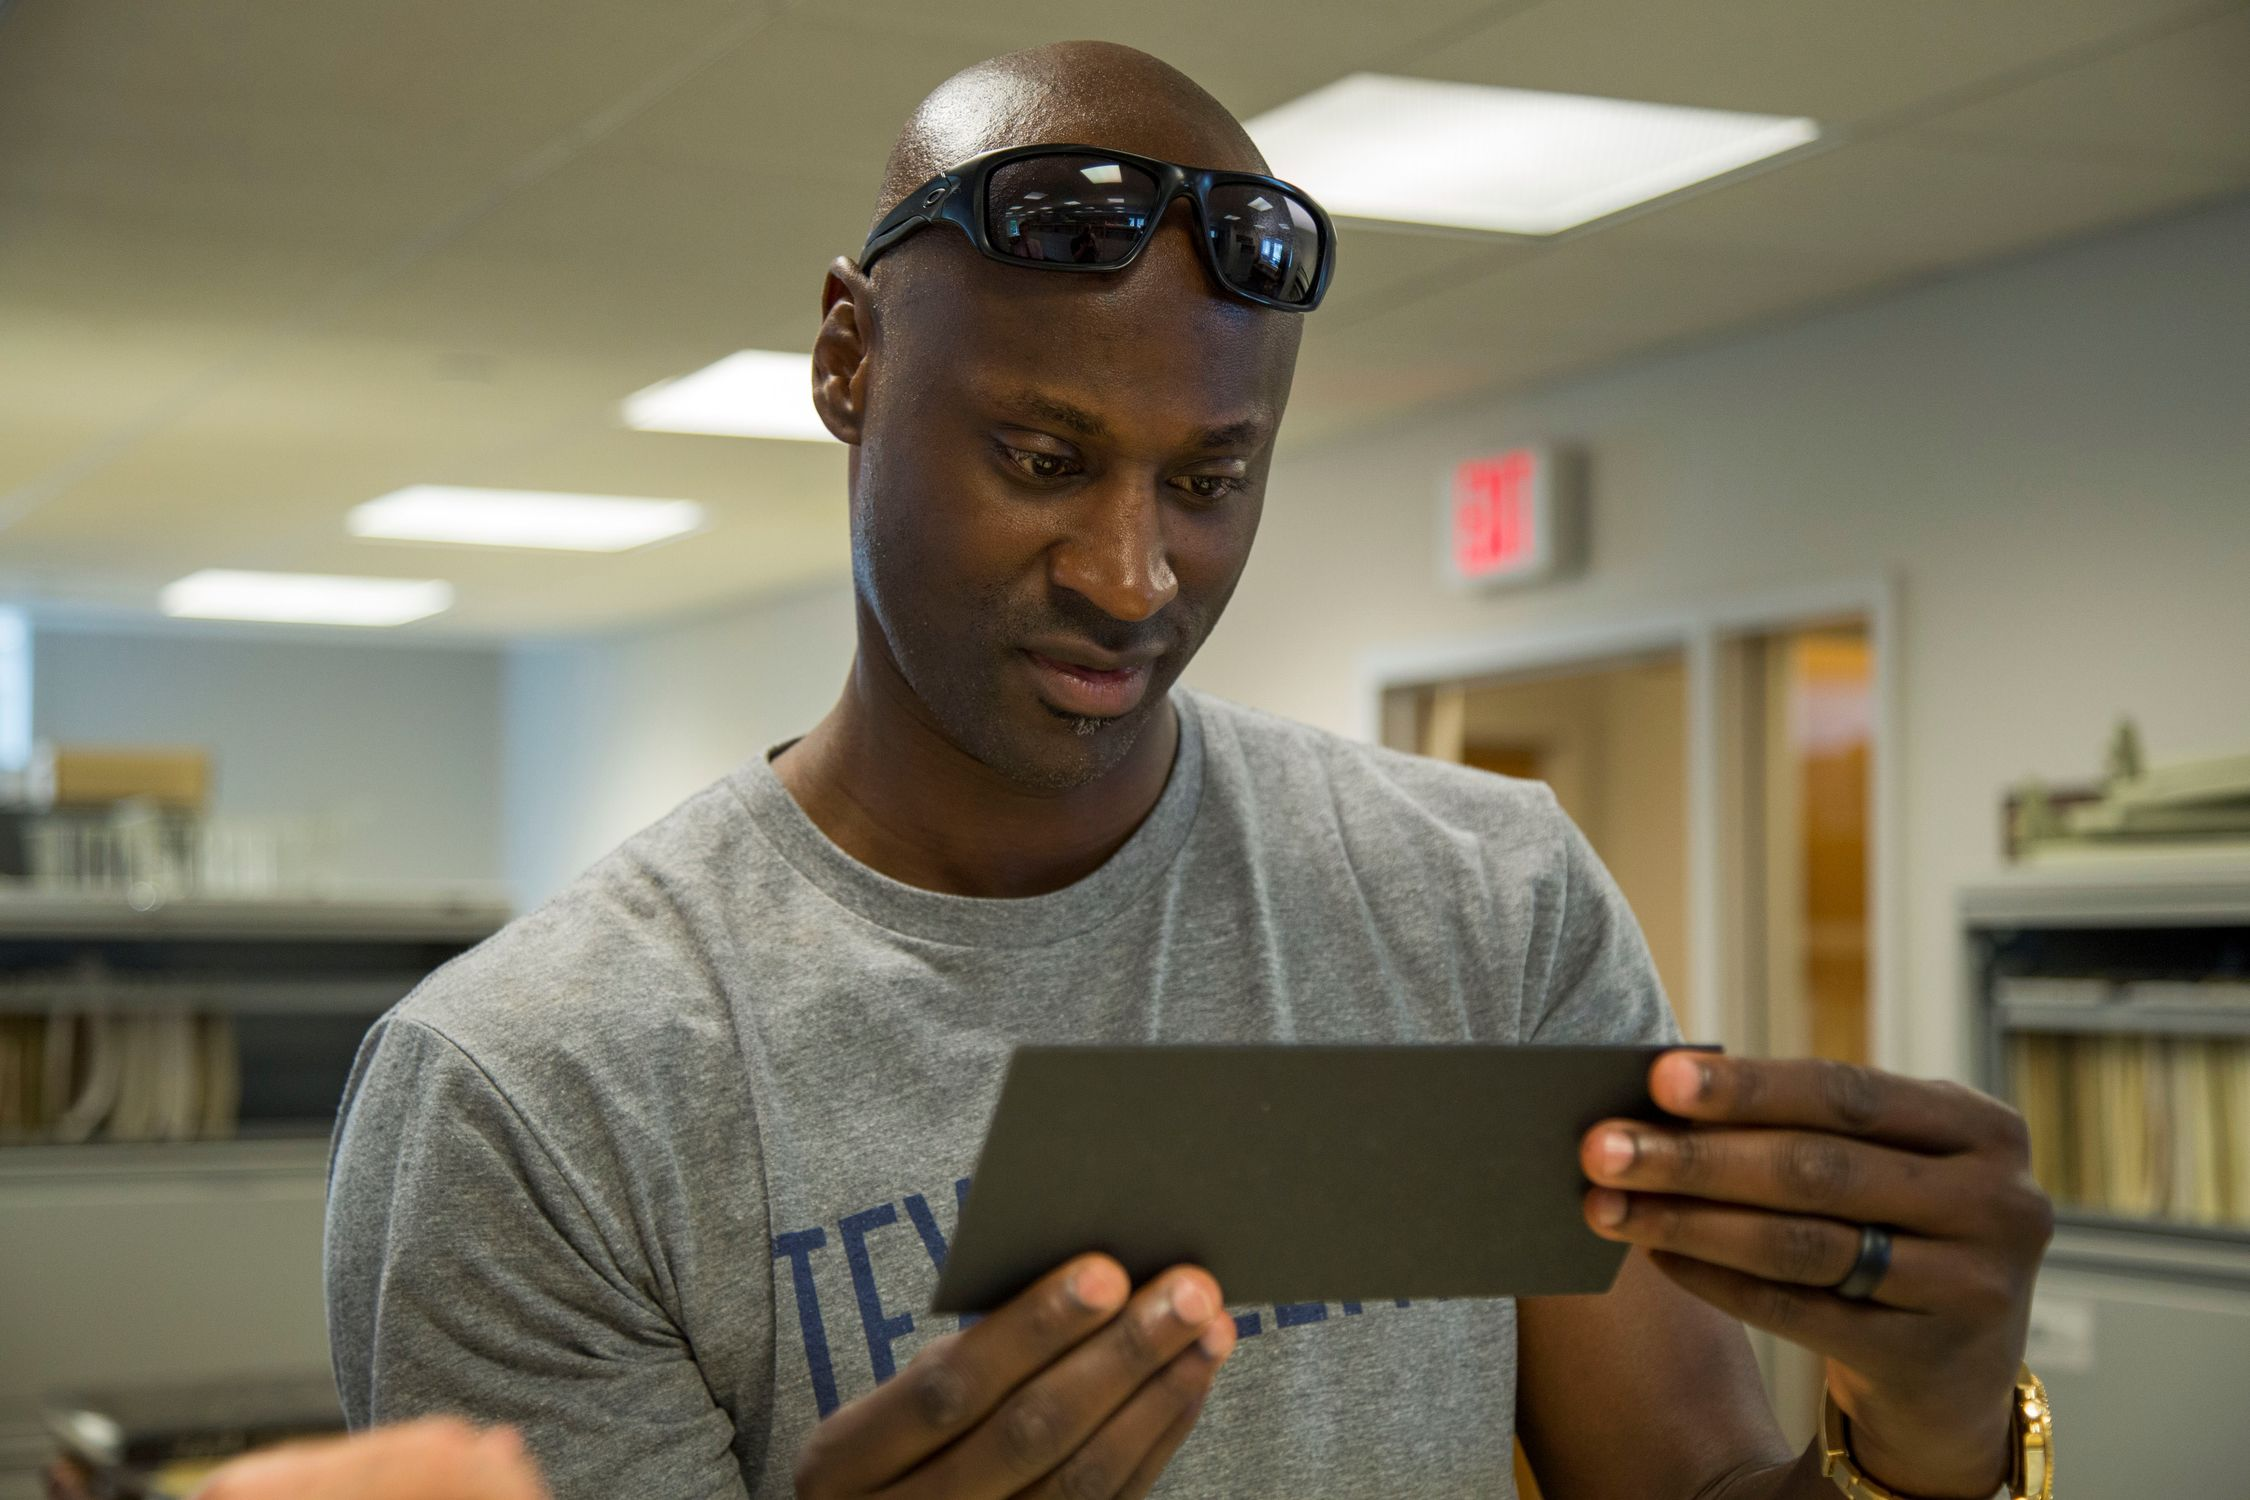 Rockies Pitcher Latroy Hawkins Visits The Hall  Baseball -5960